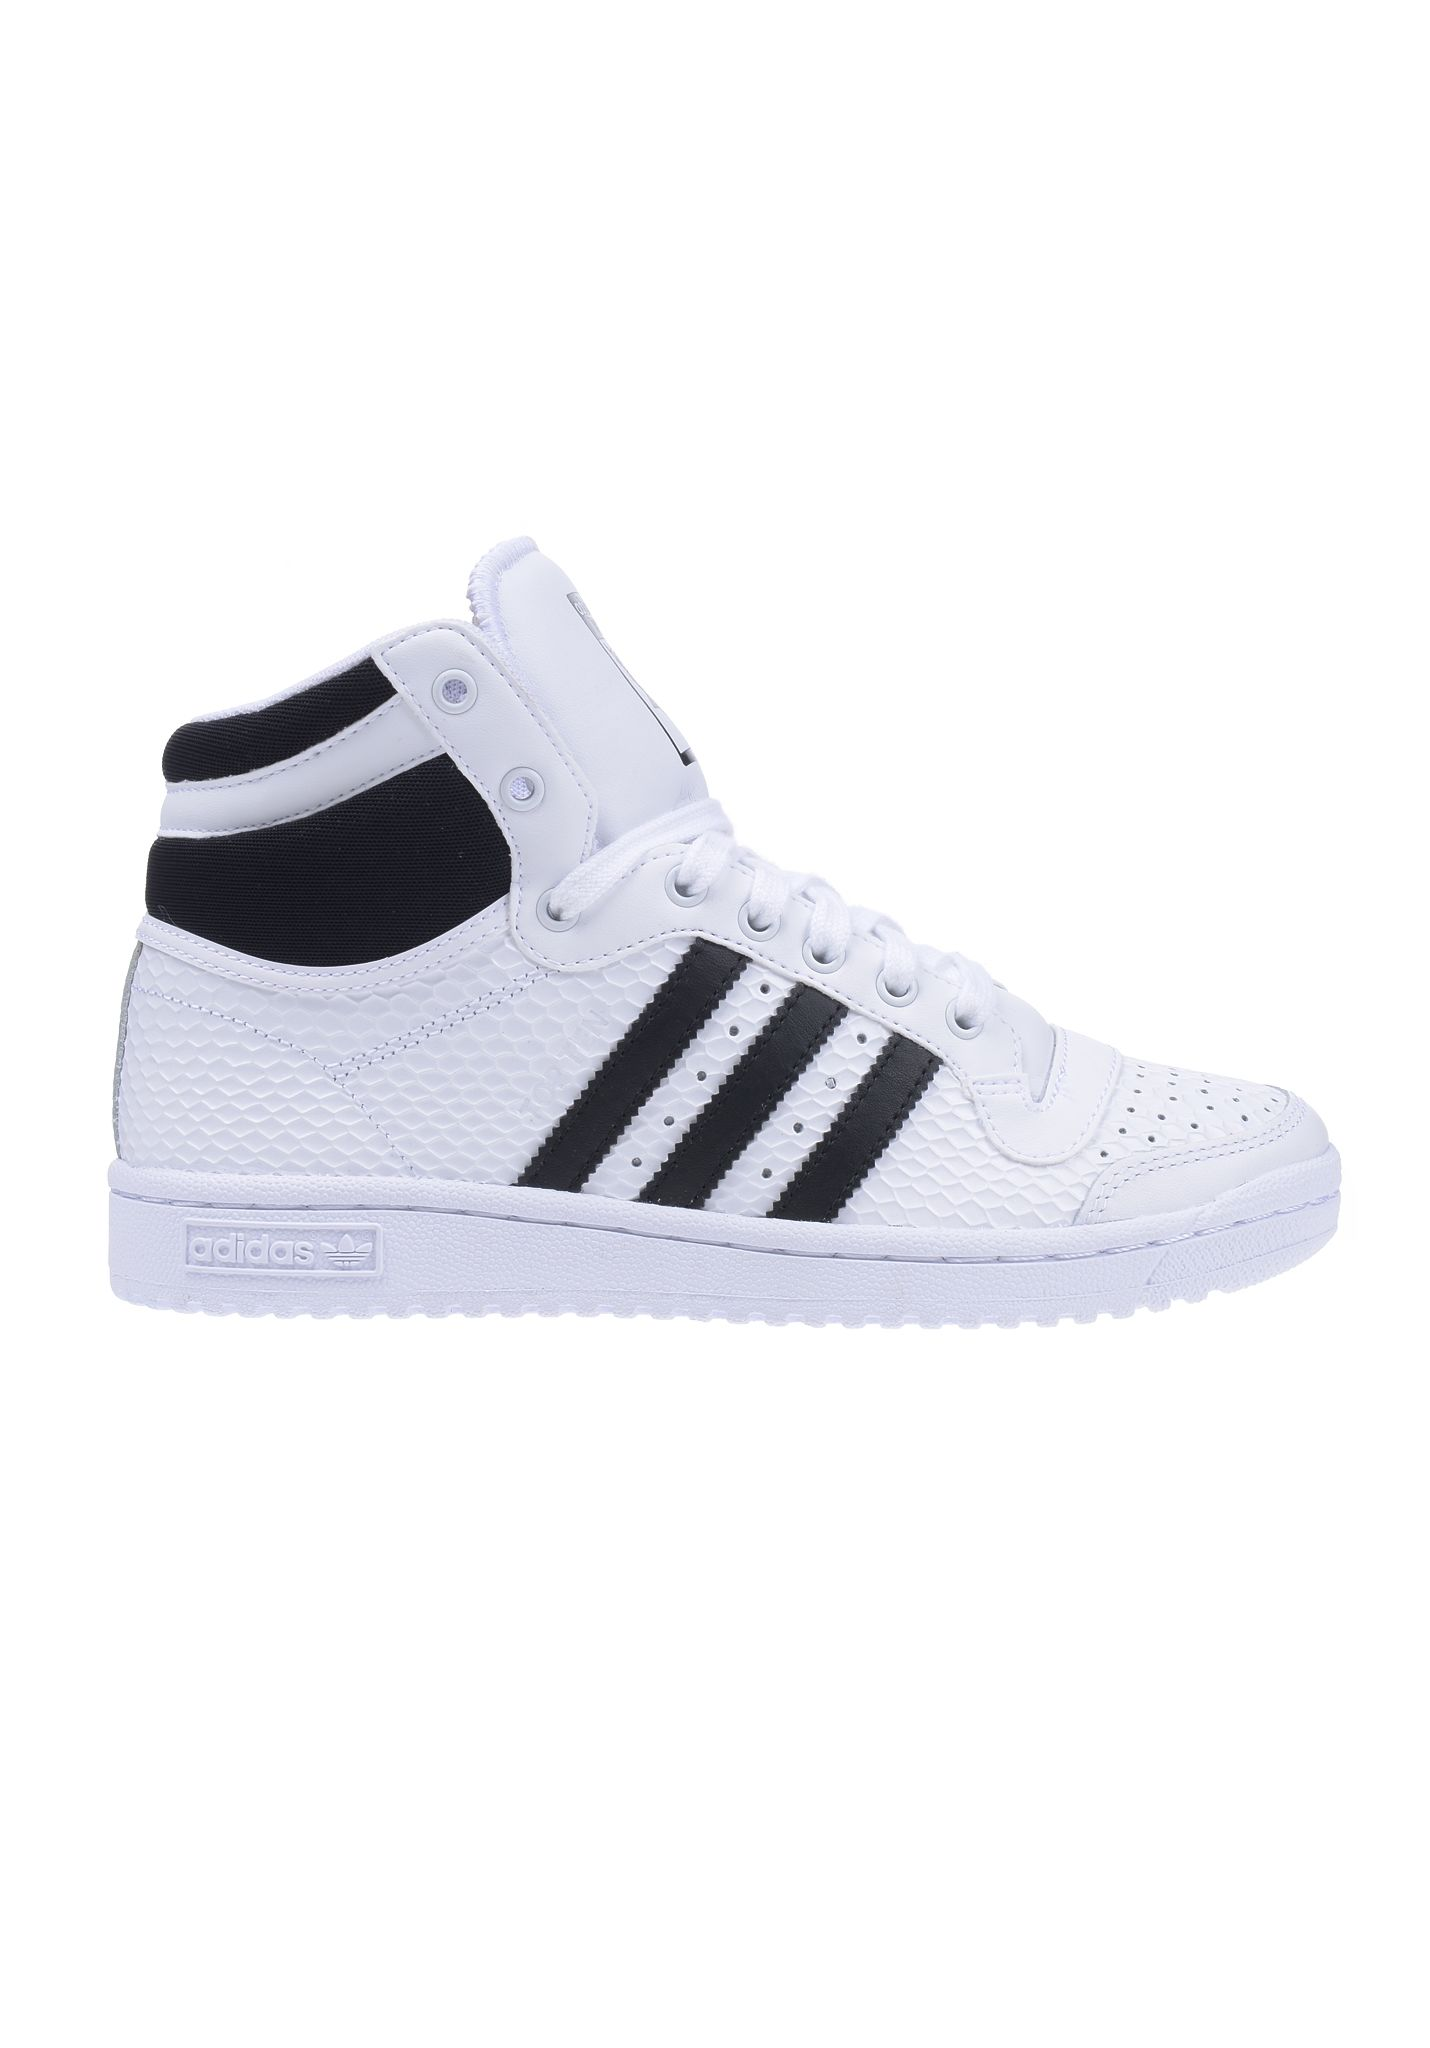 Adidas Sneakers Dames Wit Laag